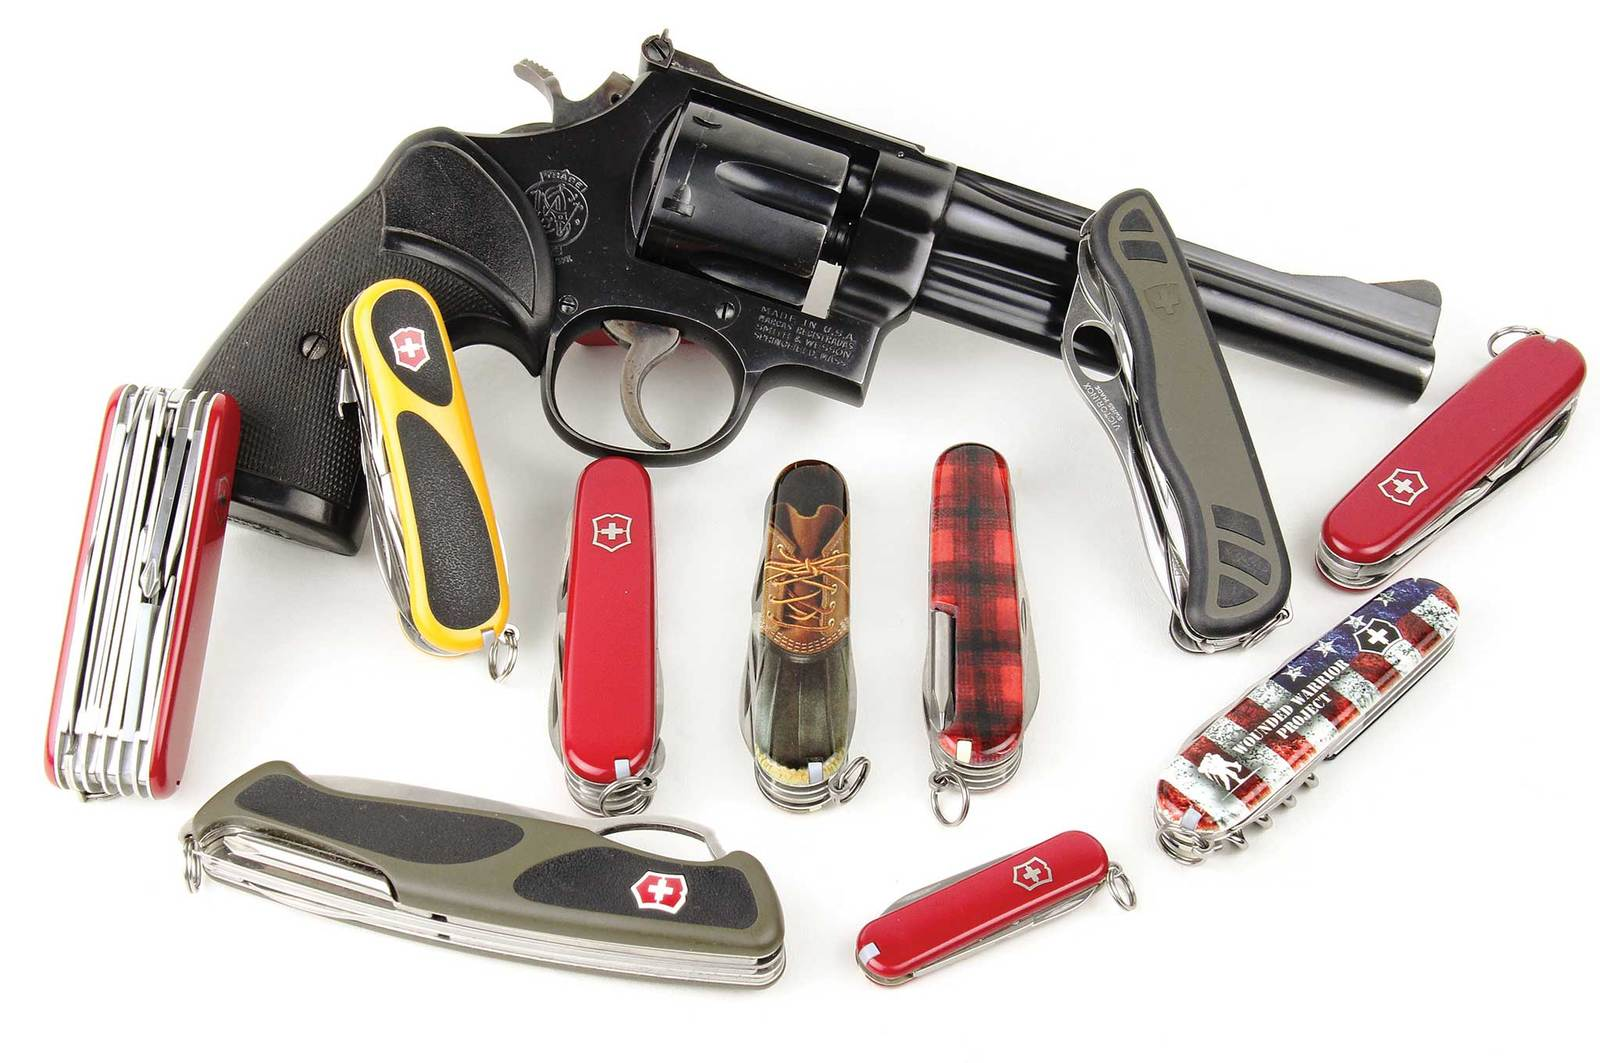 5-surprising-uses-for-the-swiss-army-knife-swiss-army-knife-models.jpg